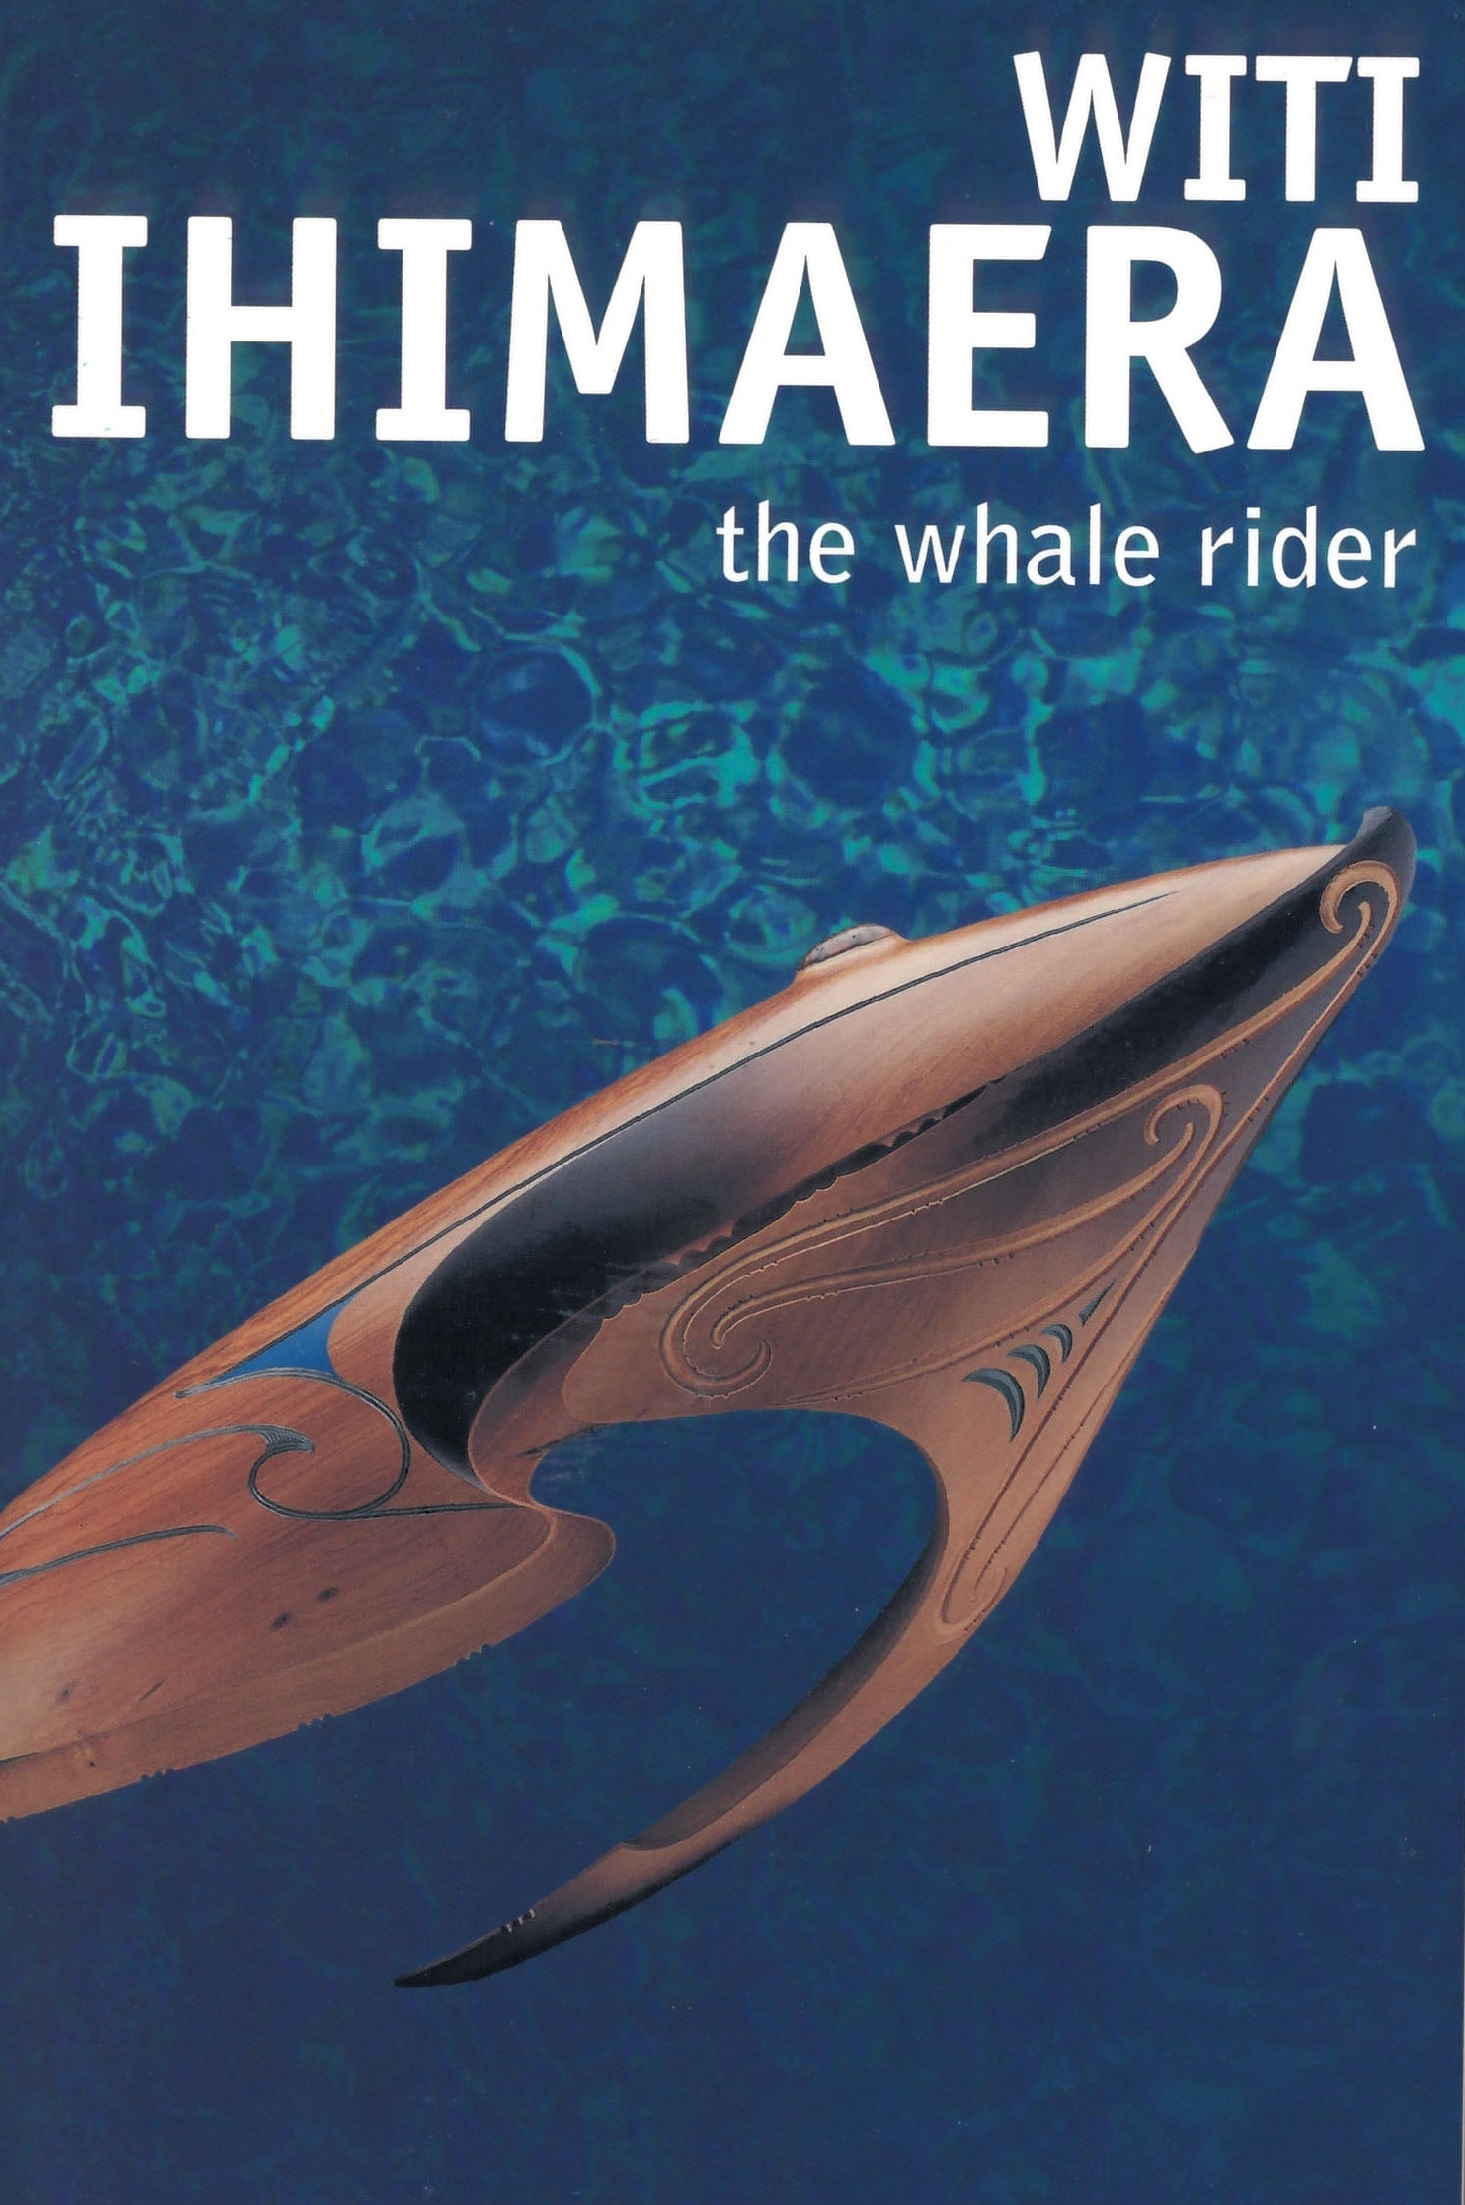 essay on the whale rider pai must overcome resistance as she tries to assume her destiny as the leader of a tribe on the nz coast essay on the whale rider